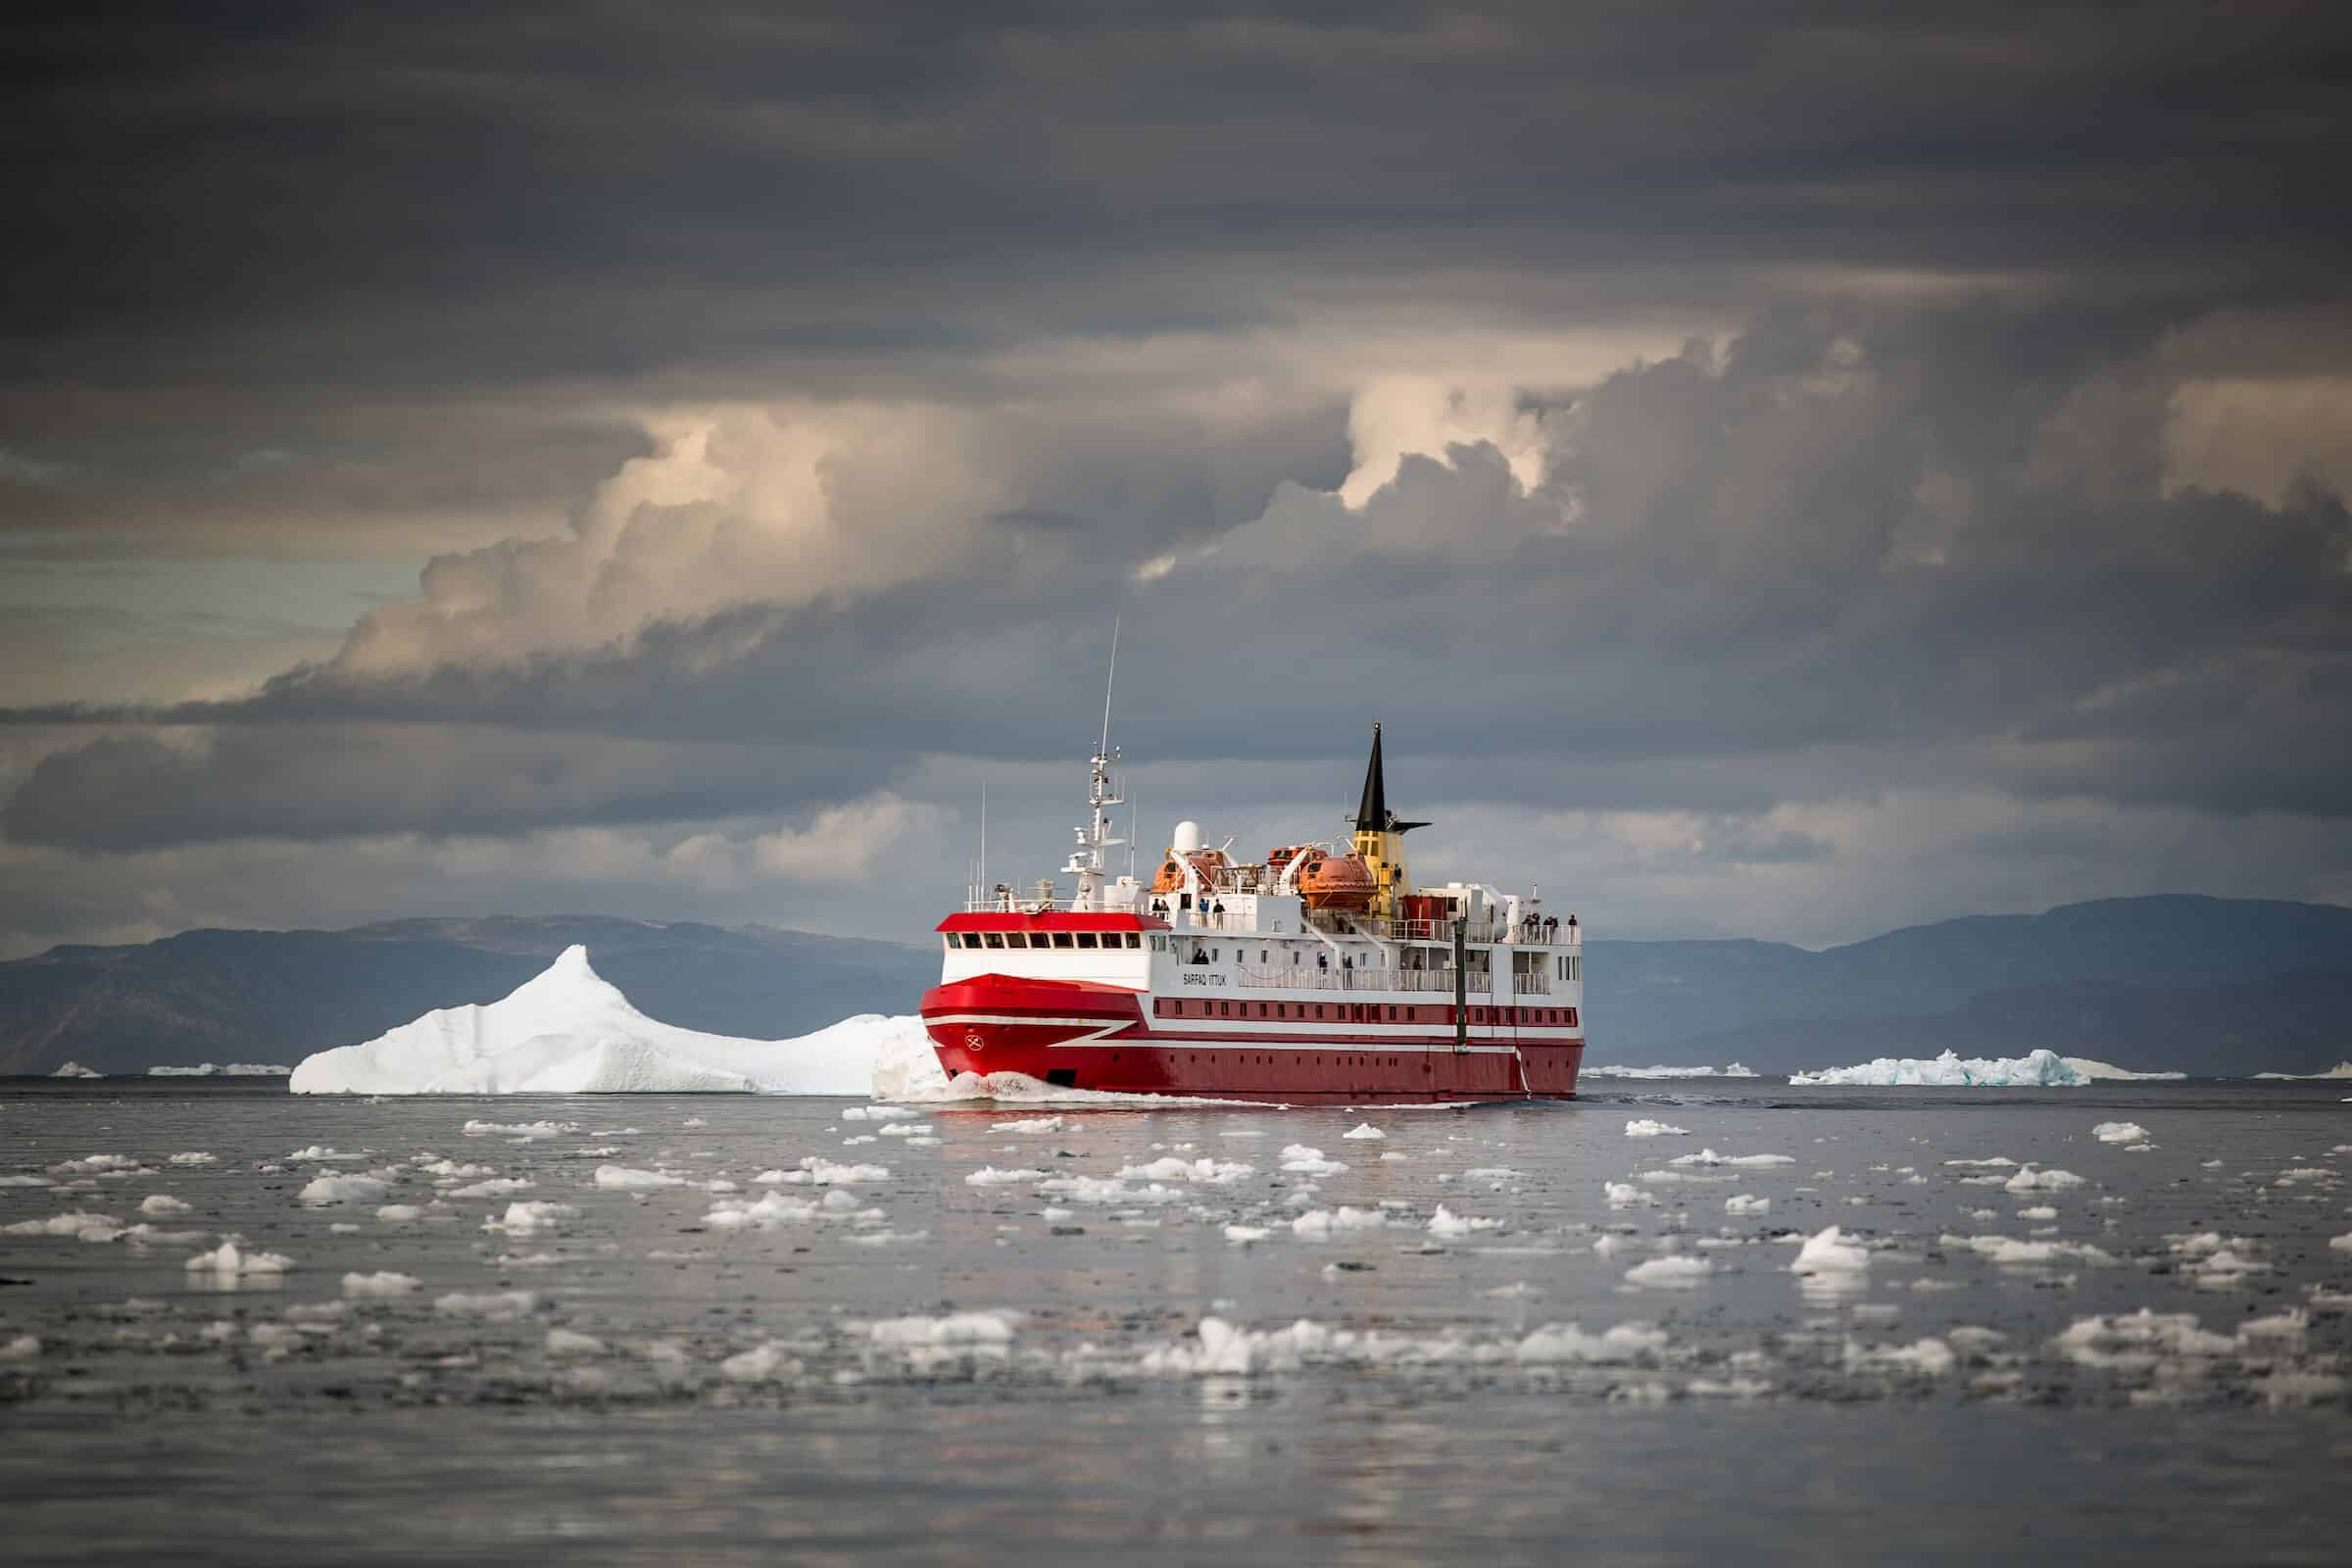 Passenger ferry Sarfaq Ittuk in the Disko Bay under dramatic clouds in Greenland. By Mads Pihl